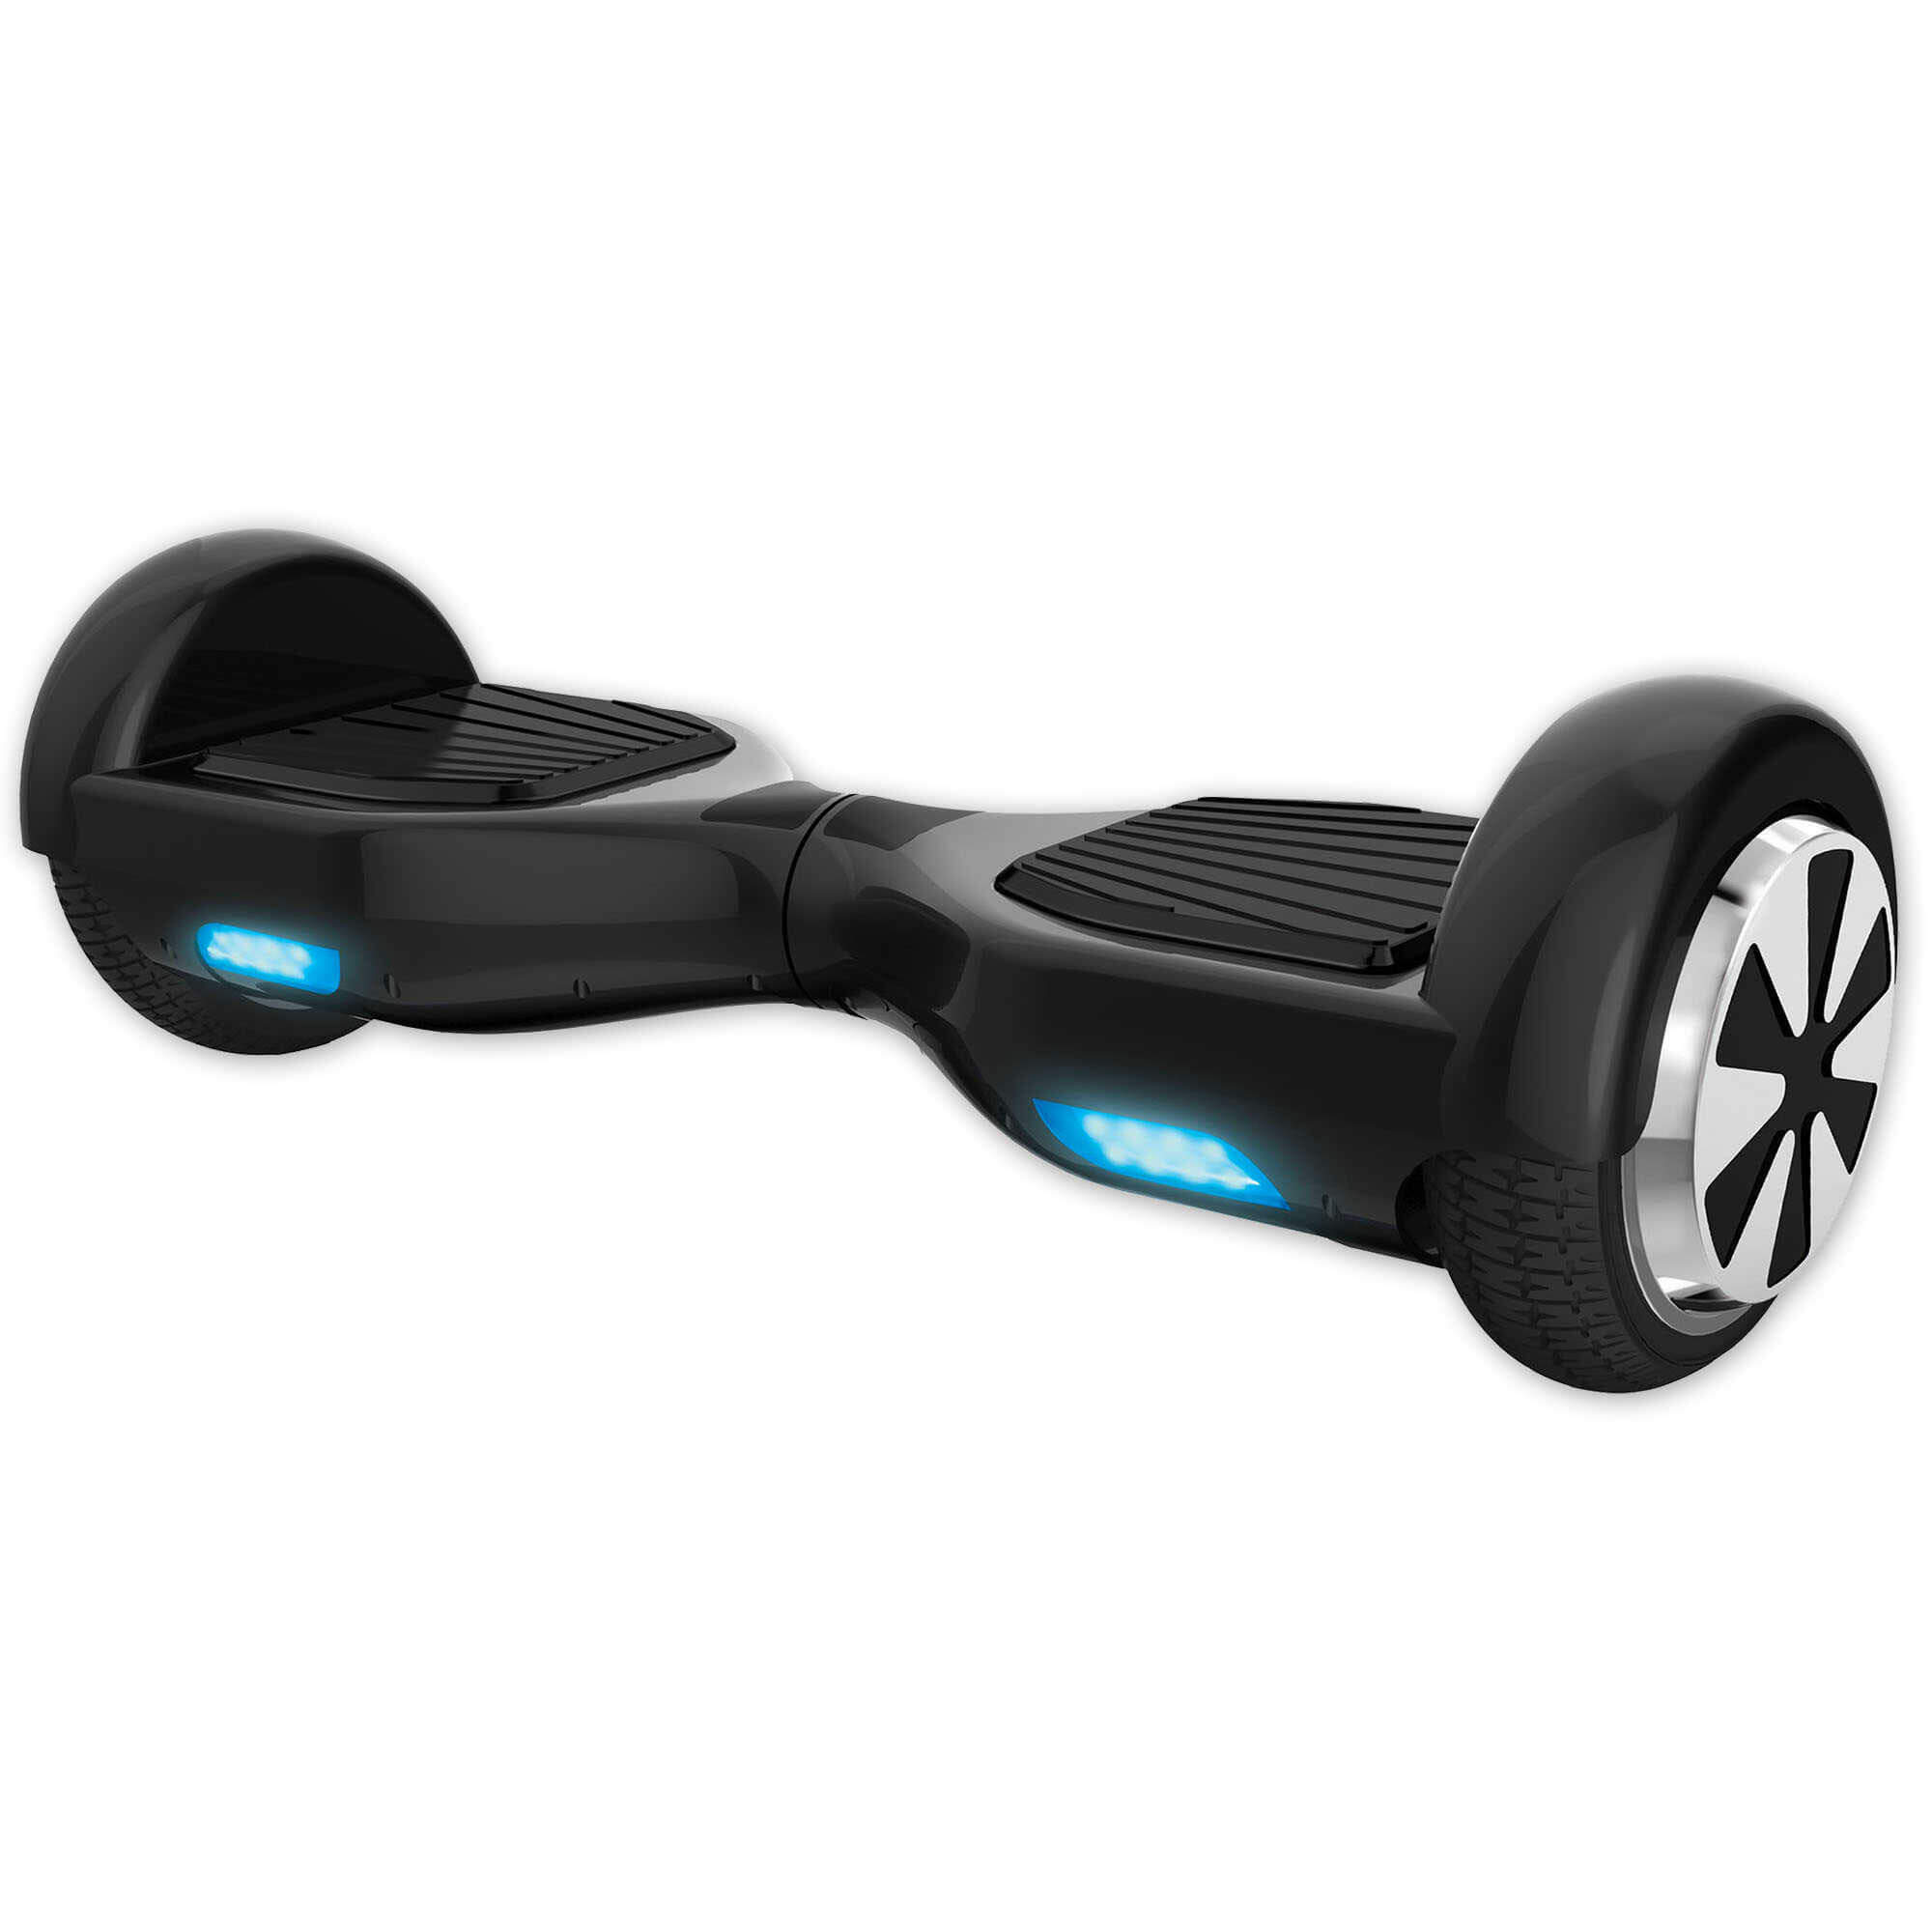 Two Wheels Hoverboard W/ LED Lights - Black